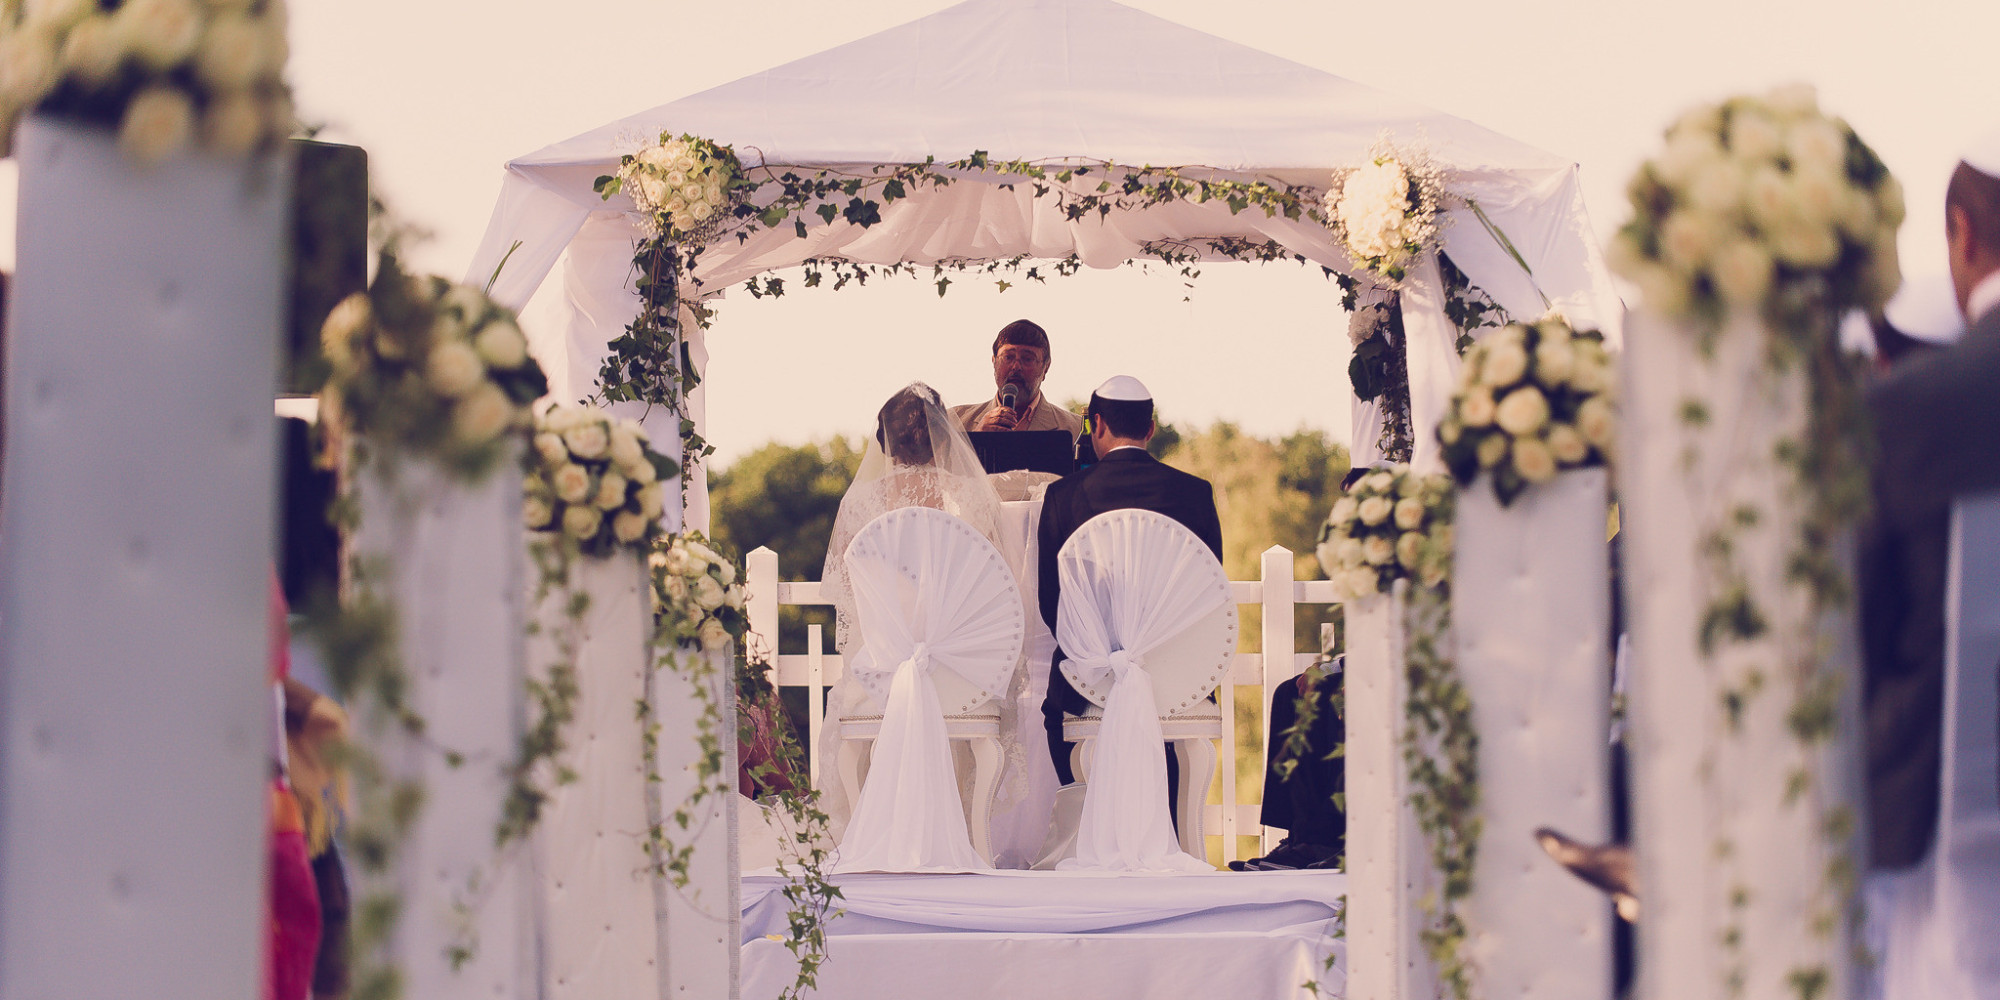 11 Things You Should Know Before Attending A Jewish Wedding